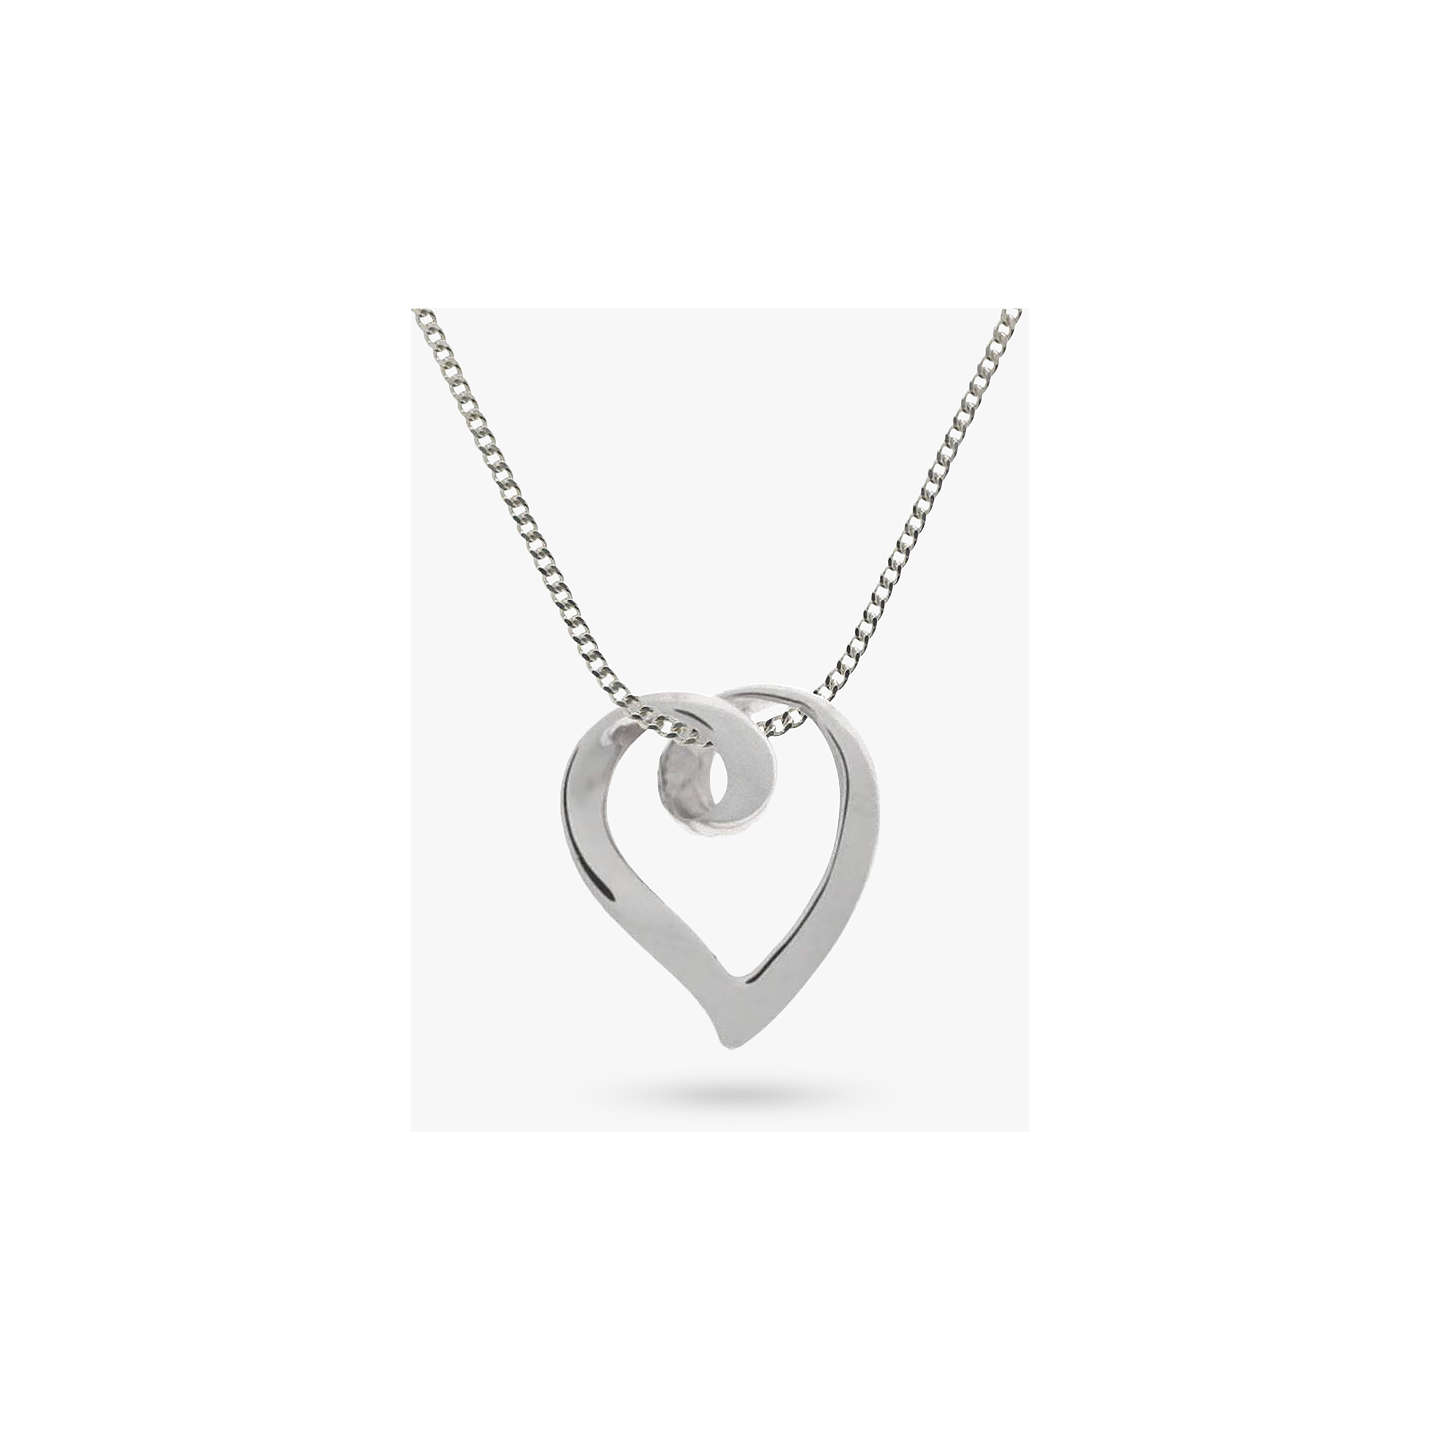 Nina b 9ct white gold large heart pendant necklace white gold at buynina b 9ct white gold large heart pendant necklace white gold online at johnlewis mozeypictures Gallery